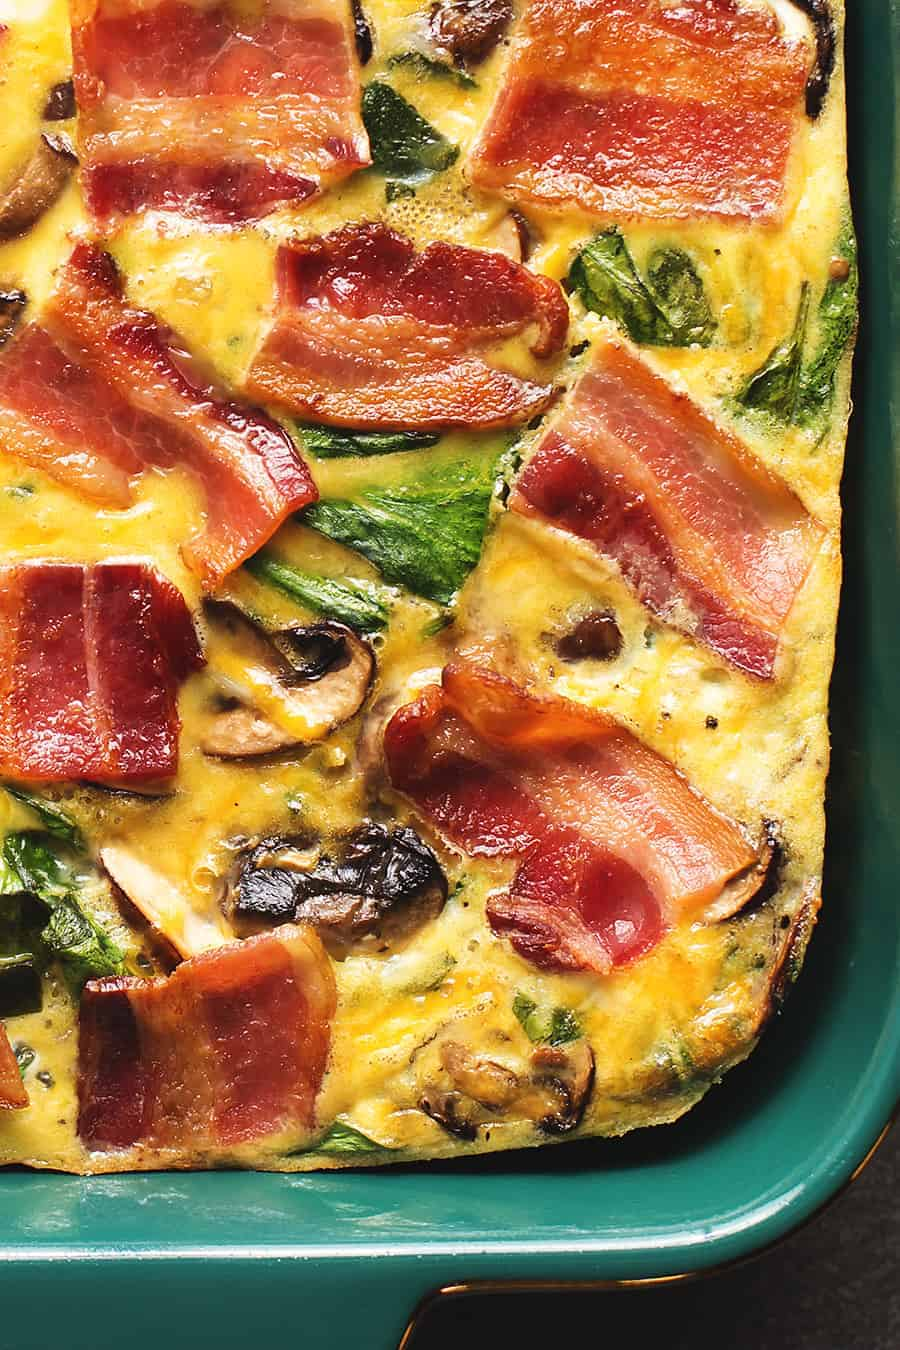 Keto Breakfast Casserole With Cheese, Bacon, Mushrooms, and Spinach